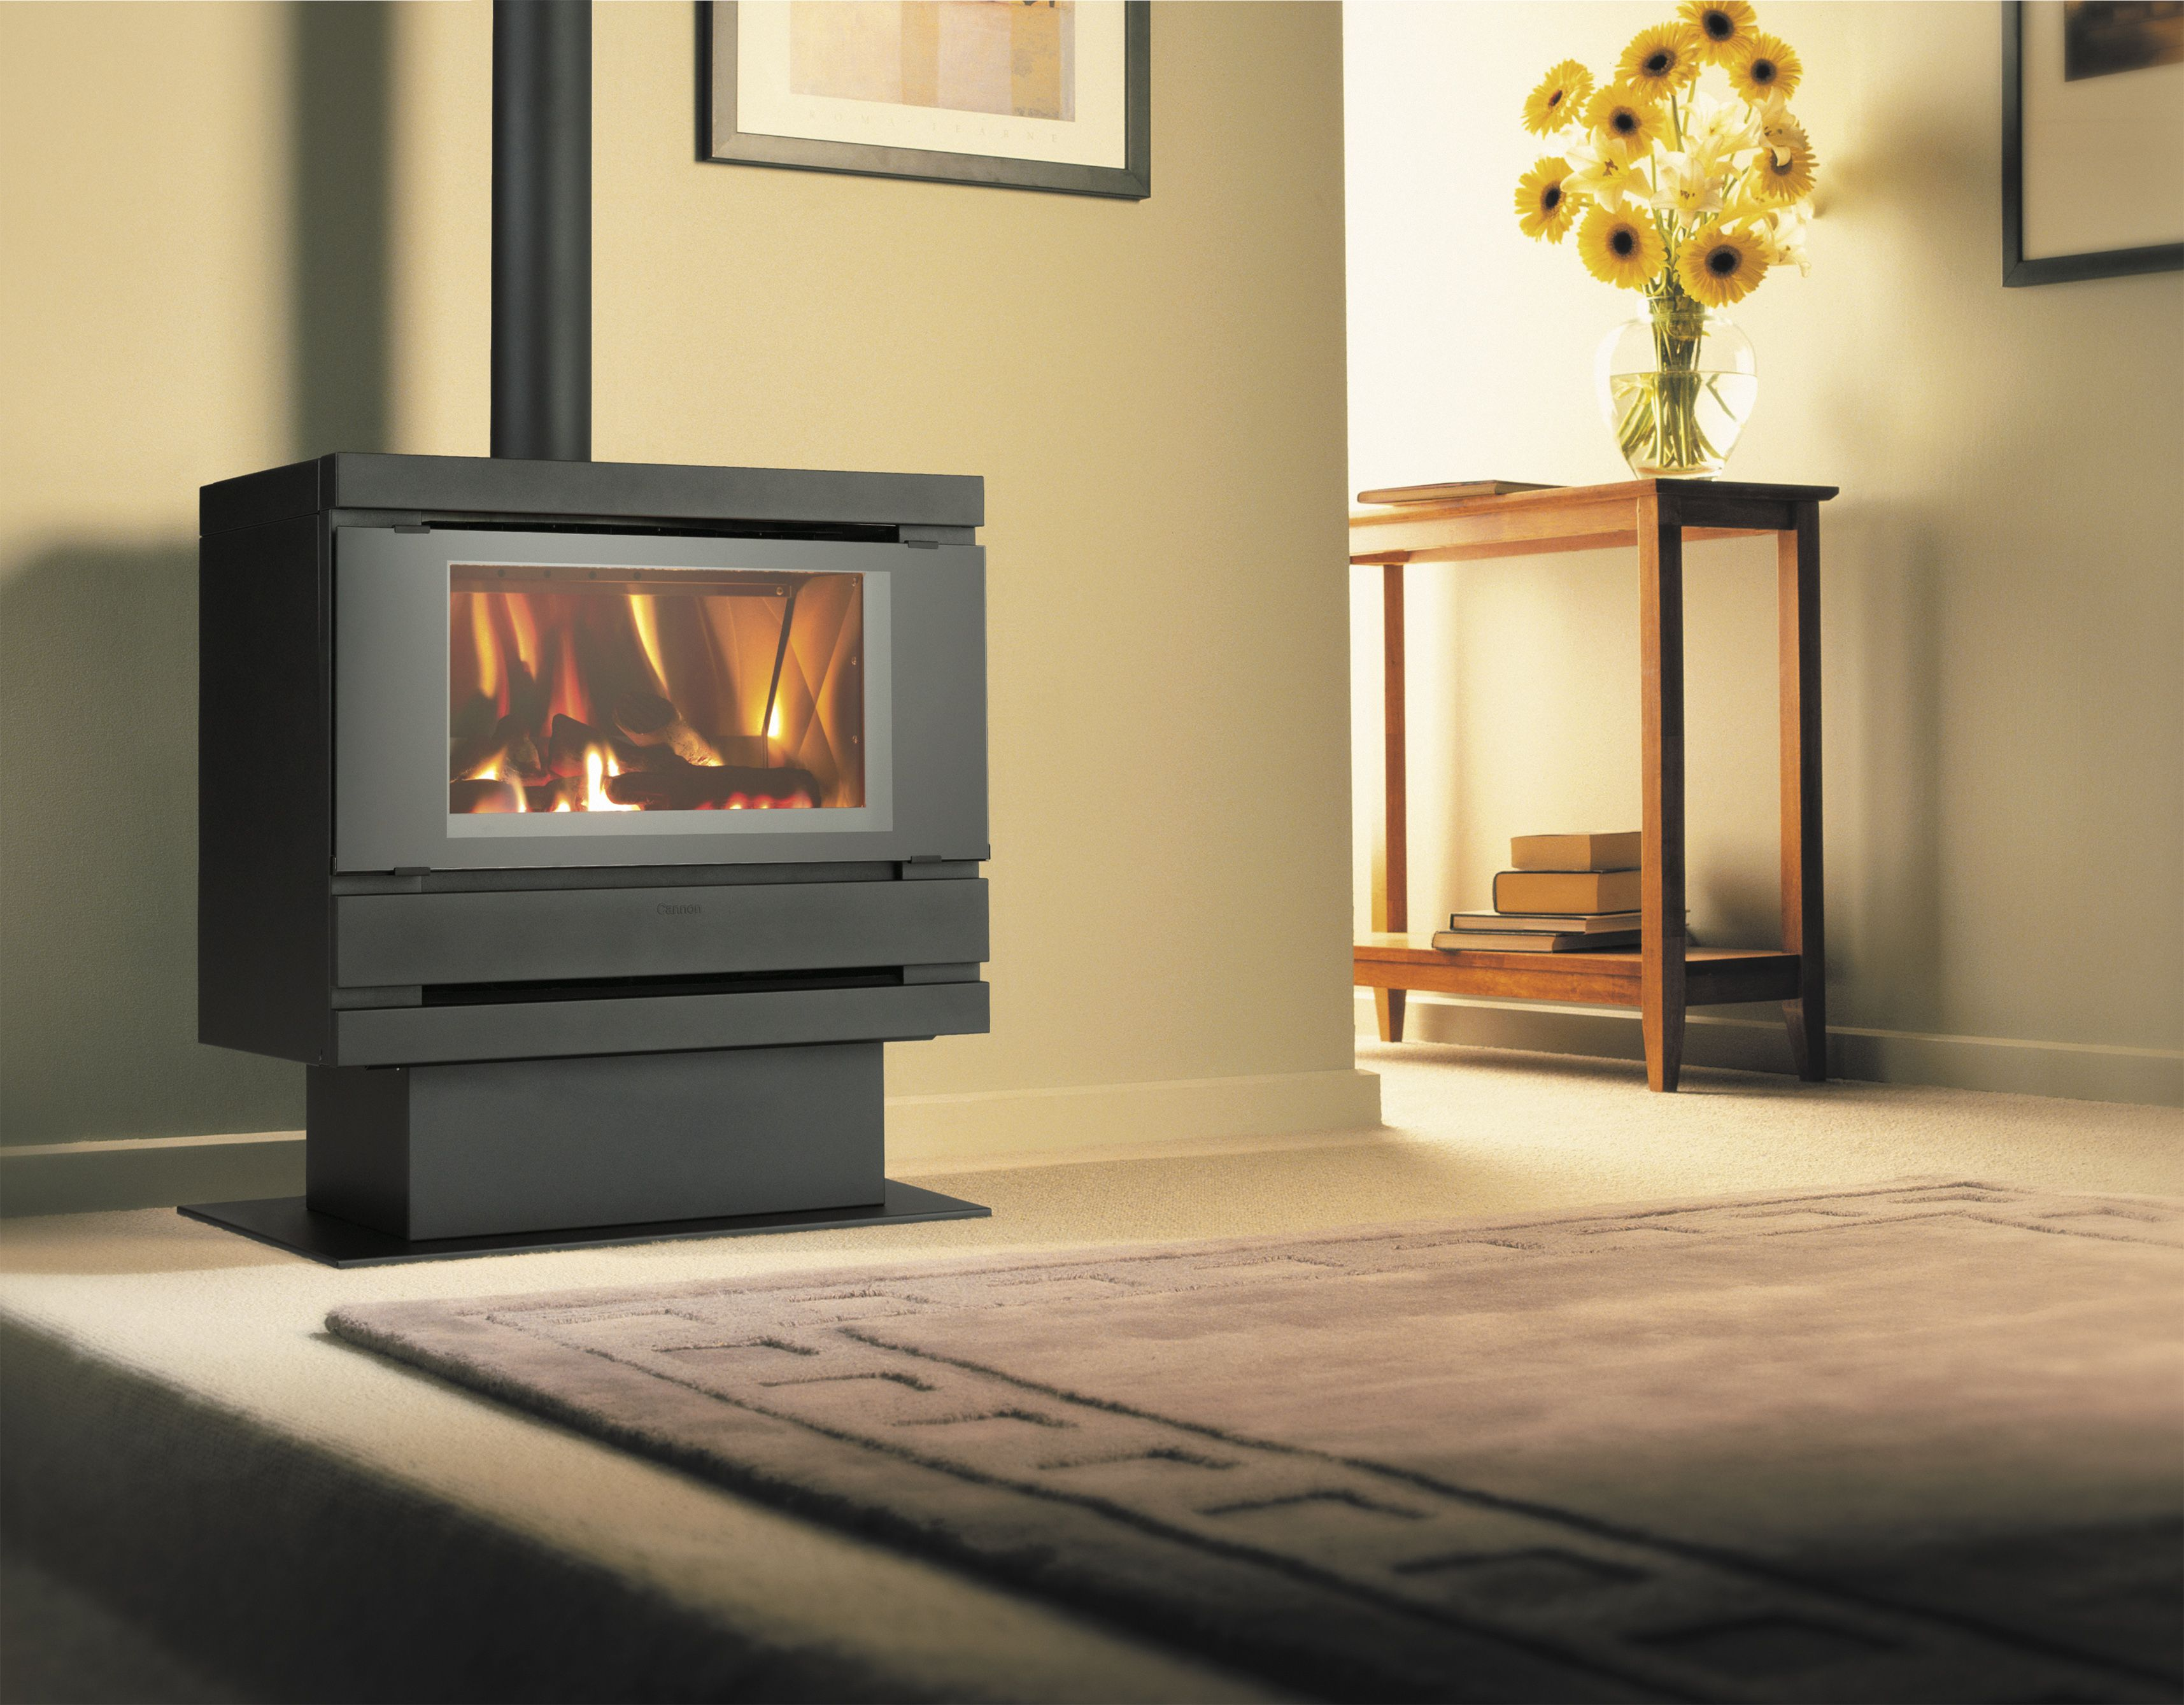 fireplaces freestanding stove gas stoves archgard fireplace products